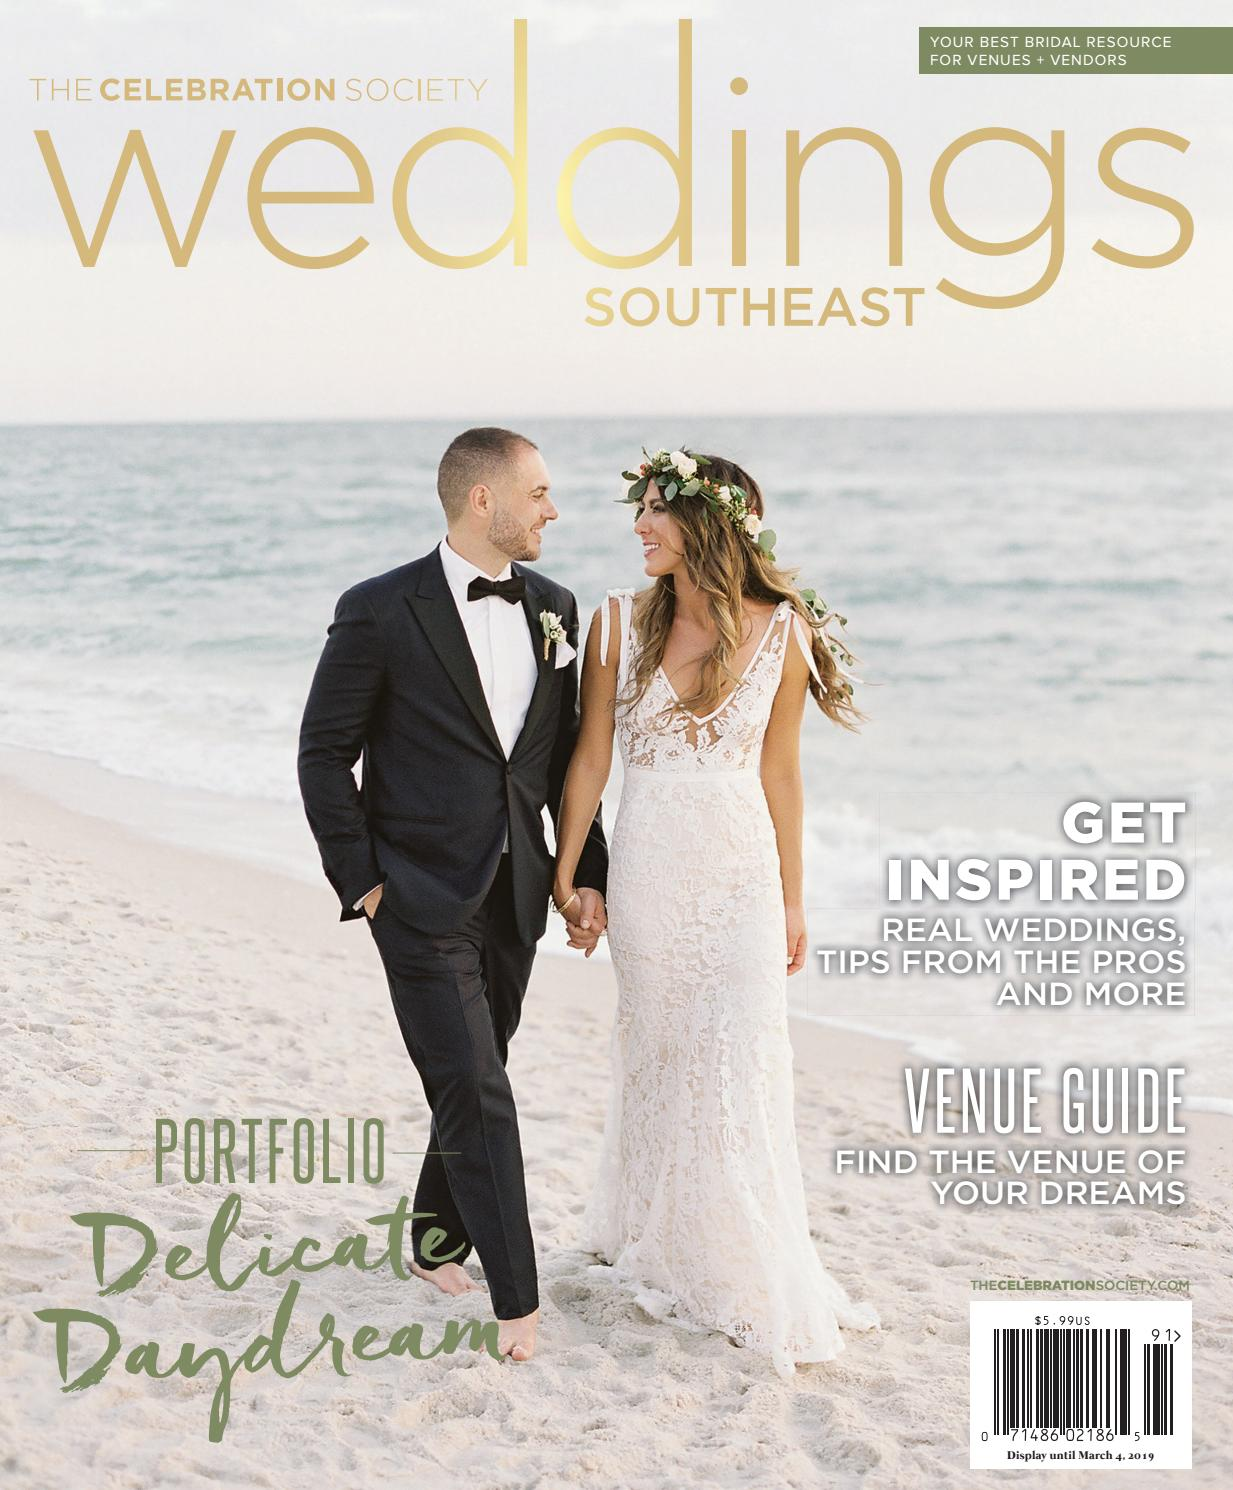 009152912 The Celebration Society - Weddings Southeast - Winter Spring 2019 by The  Celebration Society - issuu